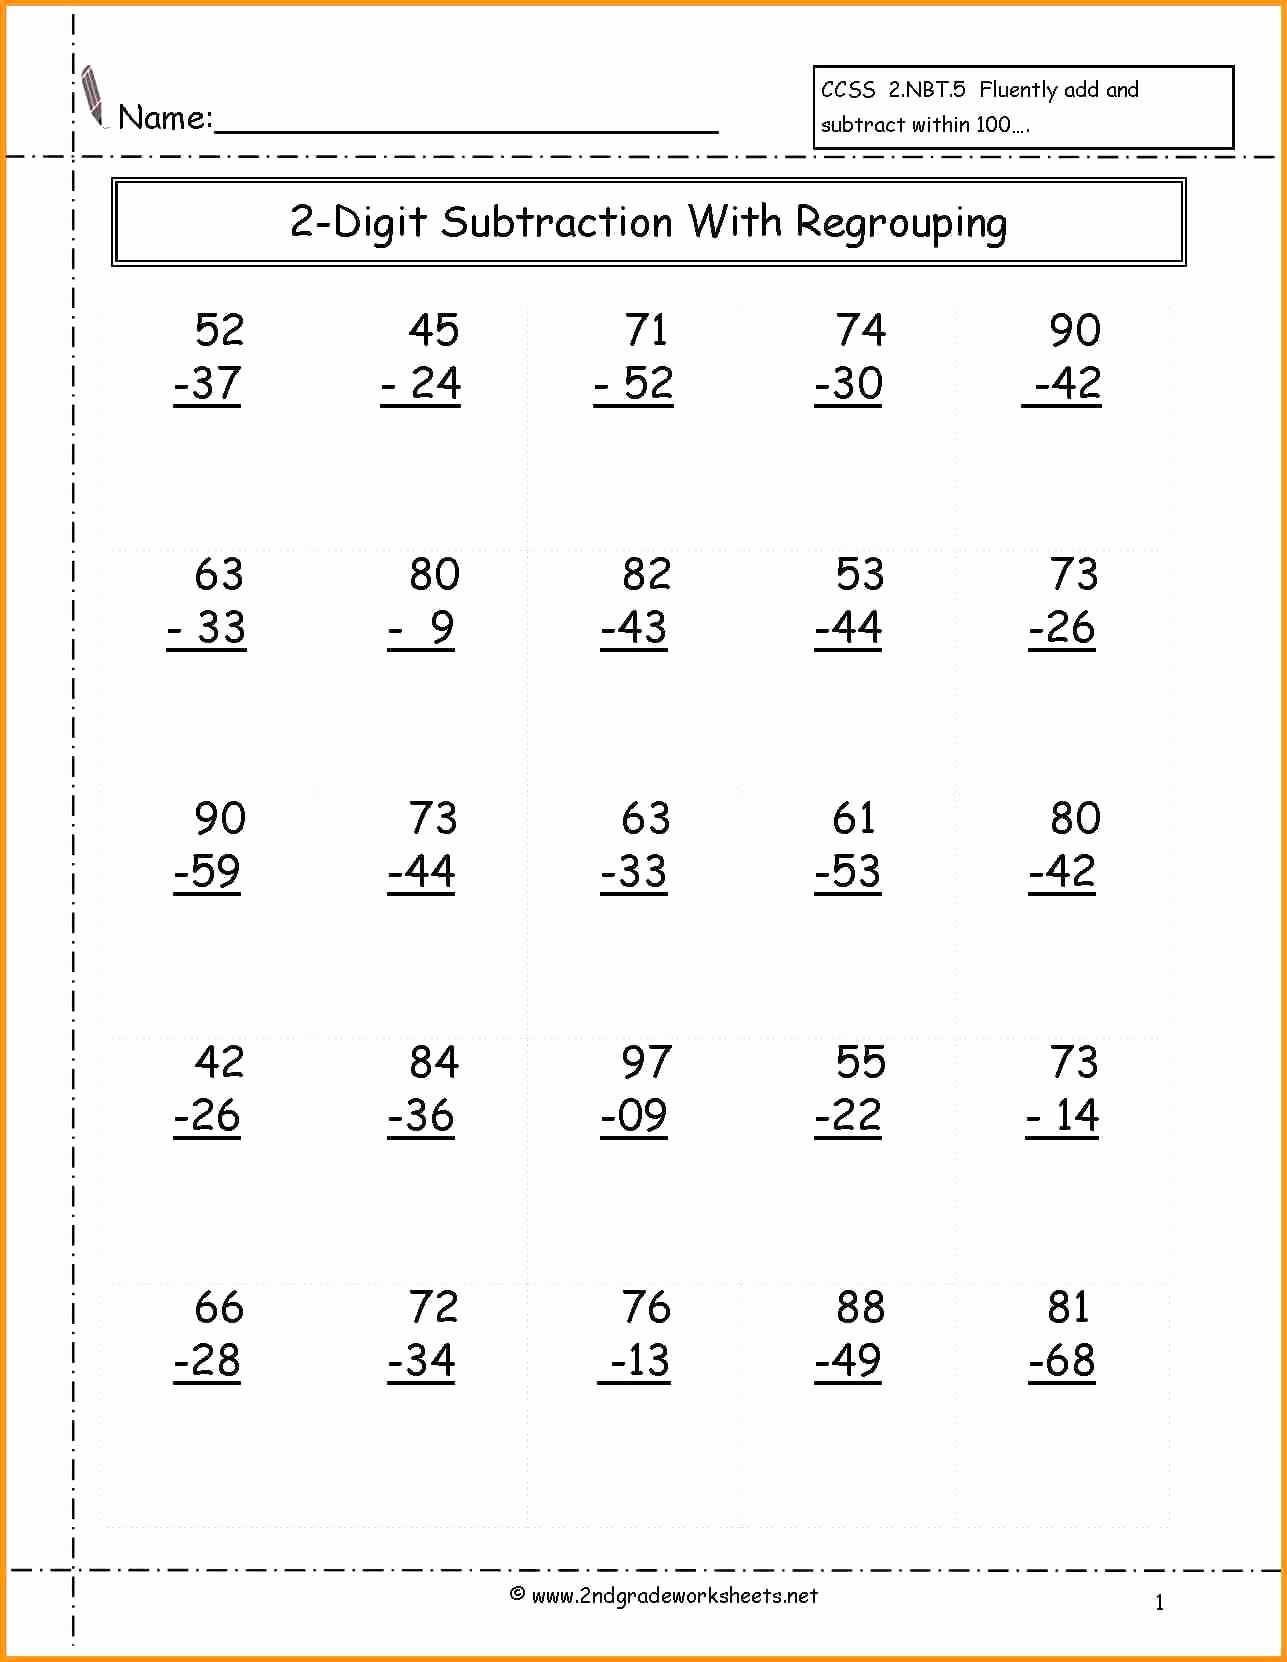 hight resolution of 2nd Grade Multiplication Worksheets Inspirational 2nd Grade Math Worksheets  Place Value Second Classroom – Printable Math Worksheets